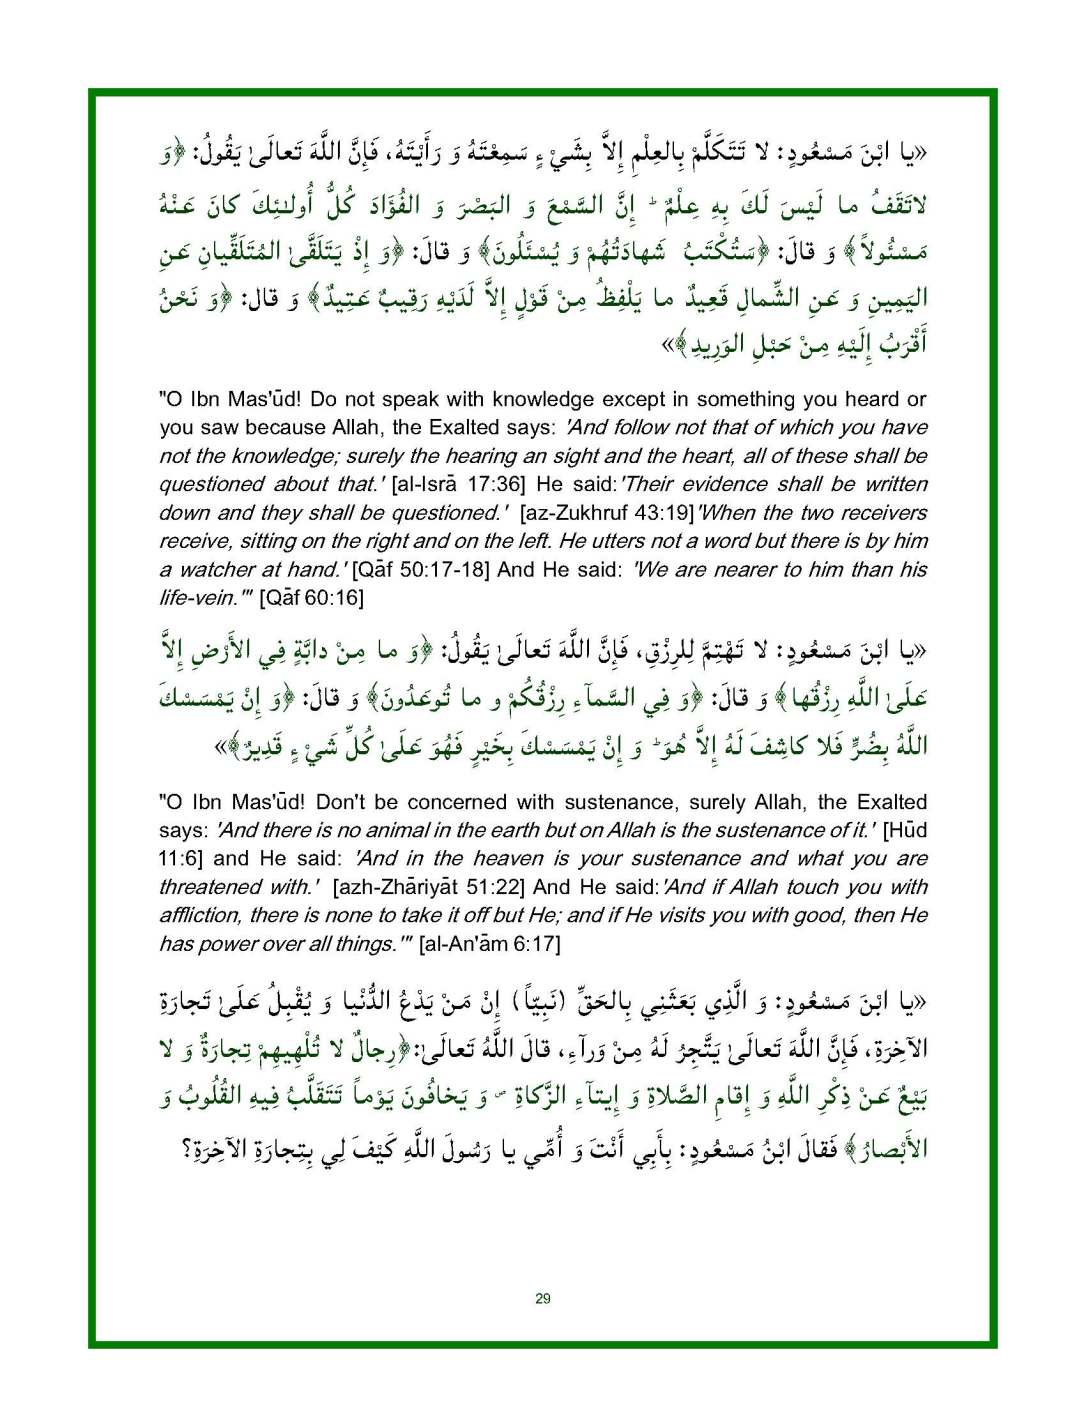 Spiritual-Advice-of-the-Messenger-of-Allah-for-Ibn-Masud-unlocked_Page_29